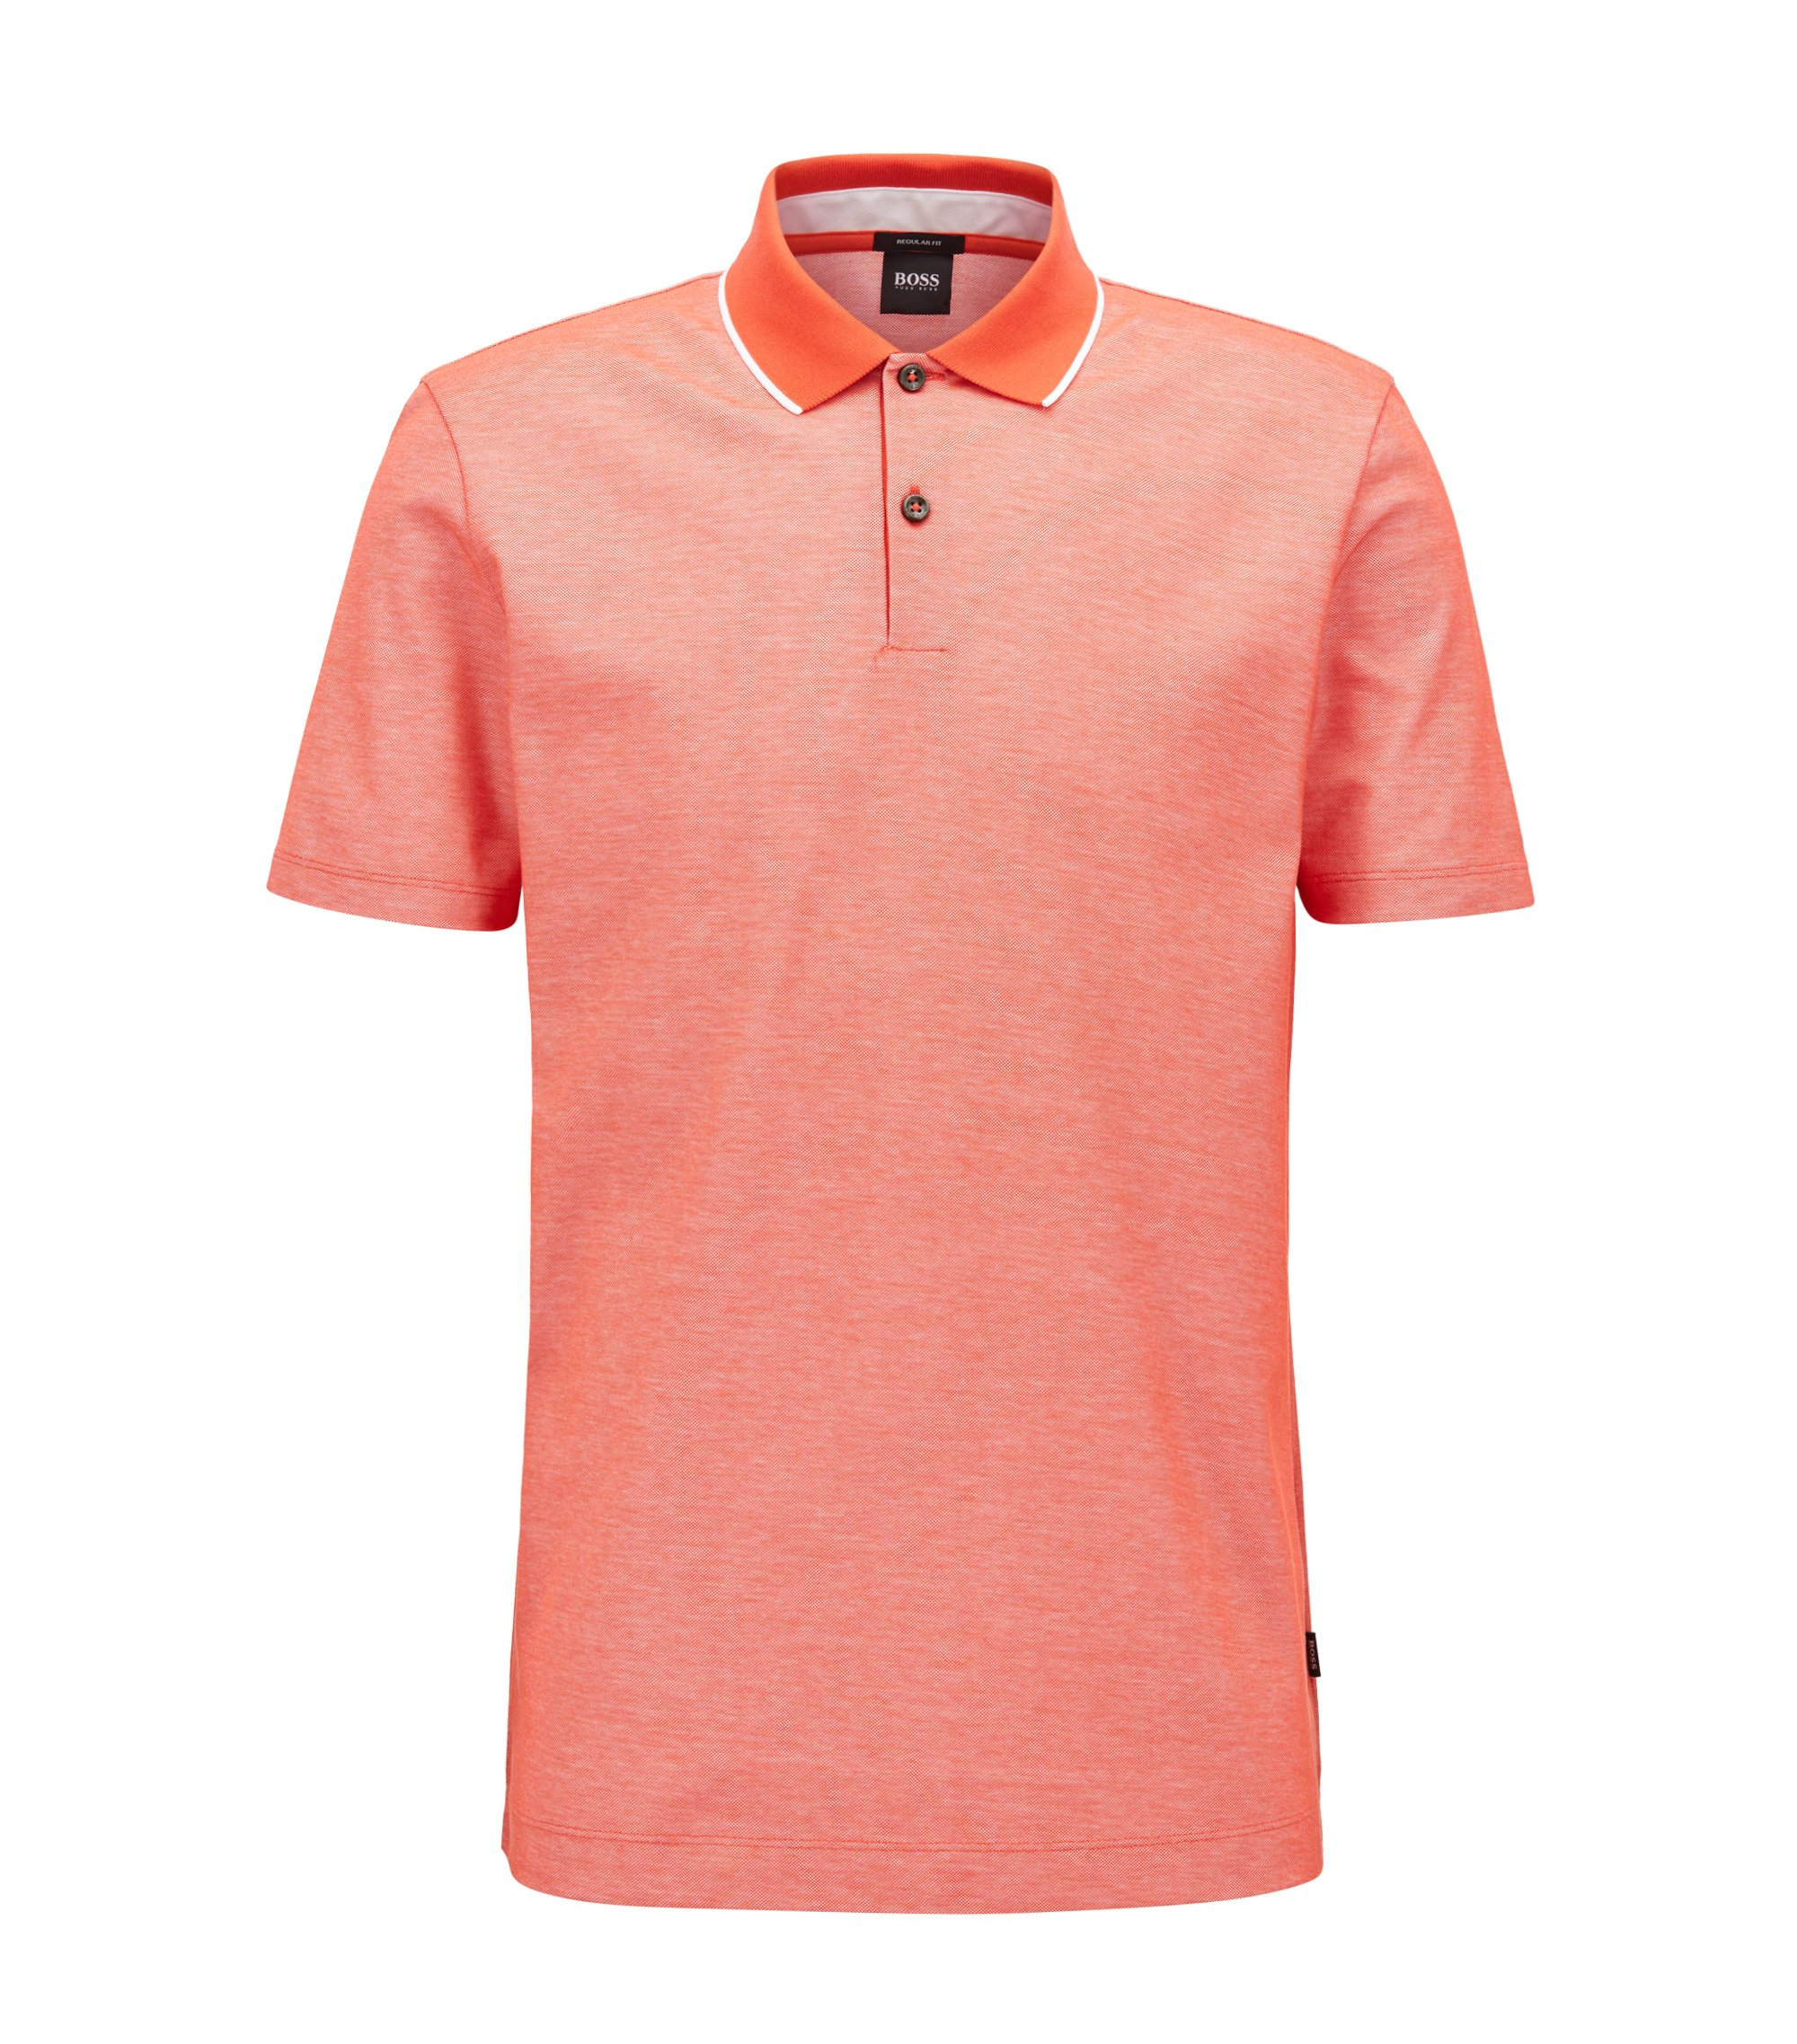 Tipped Cotton Polo Shirt, Regular Fit | Piket, Red